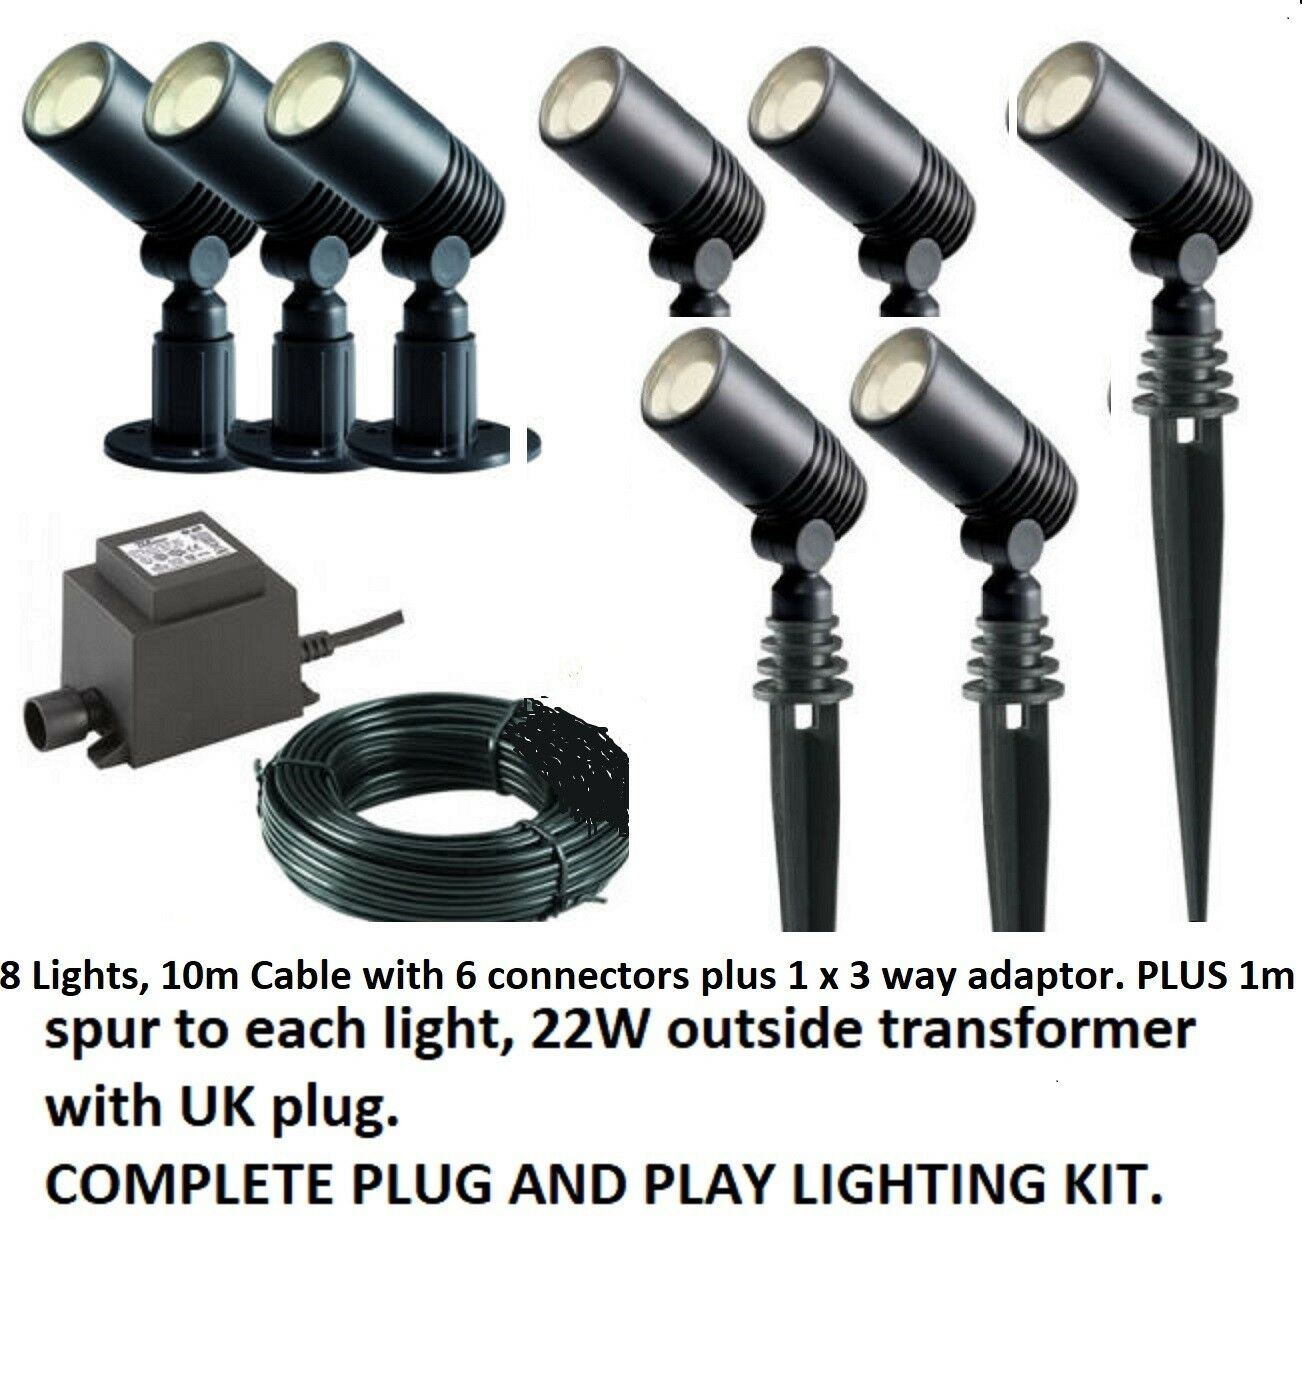 Alder Spike Garden Outdoor Light Kit 12v    LED 8 Light Kit Plug and Play 205674